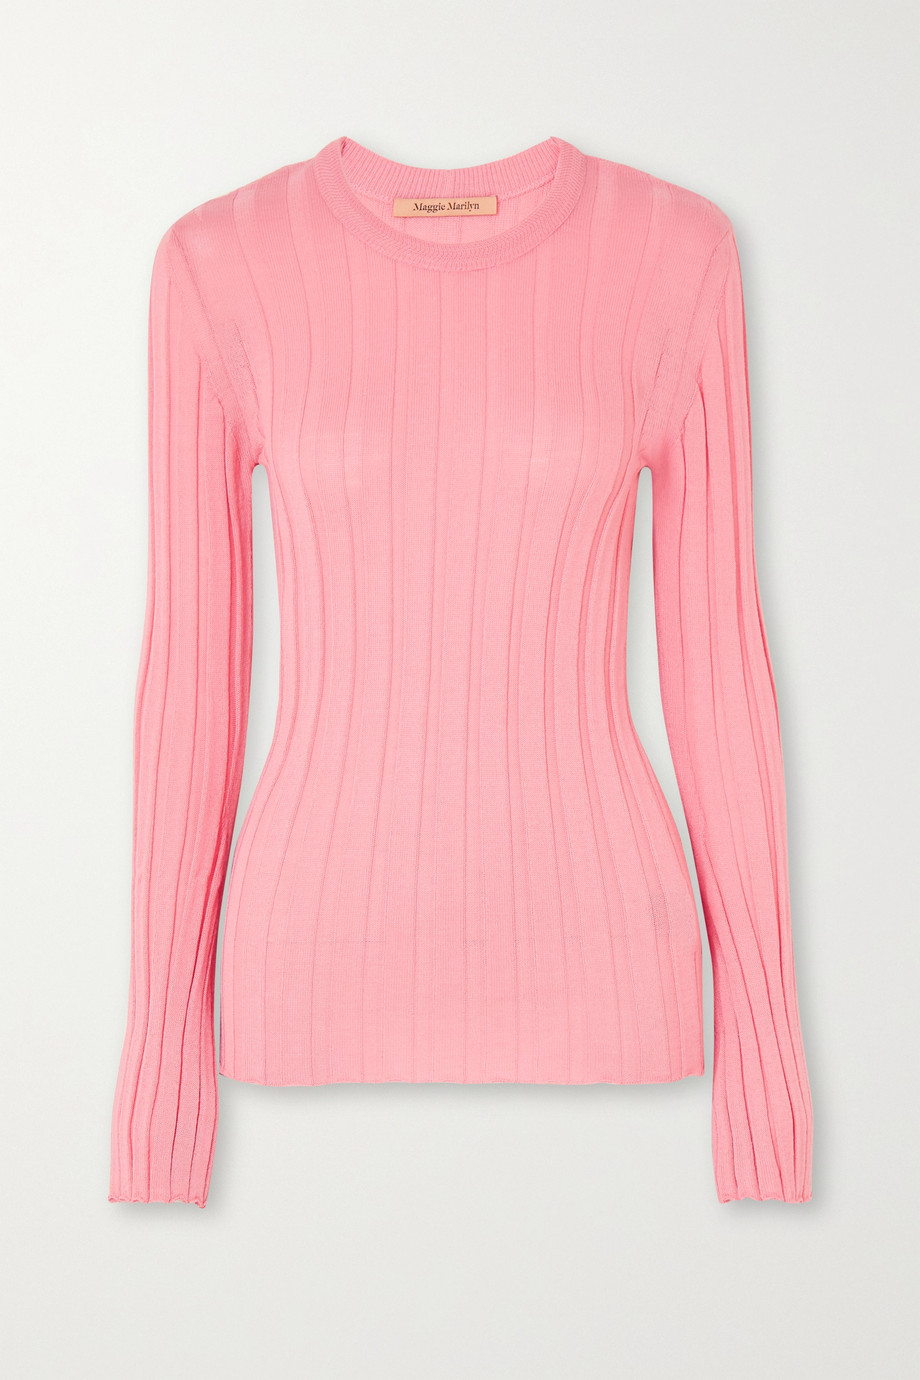 Maggie Marilyn + NET SUSTAIN The Sherbet wool-blend ribbed-knit sweater